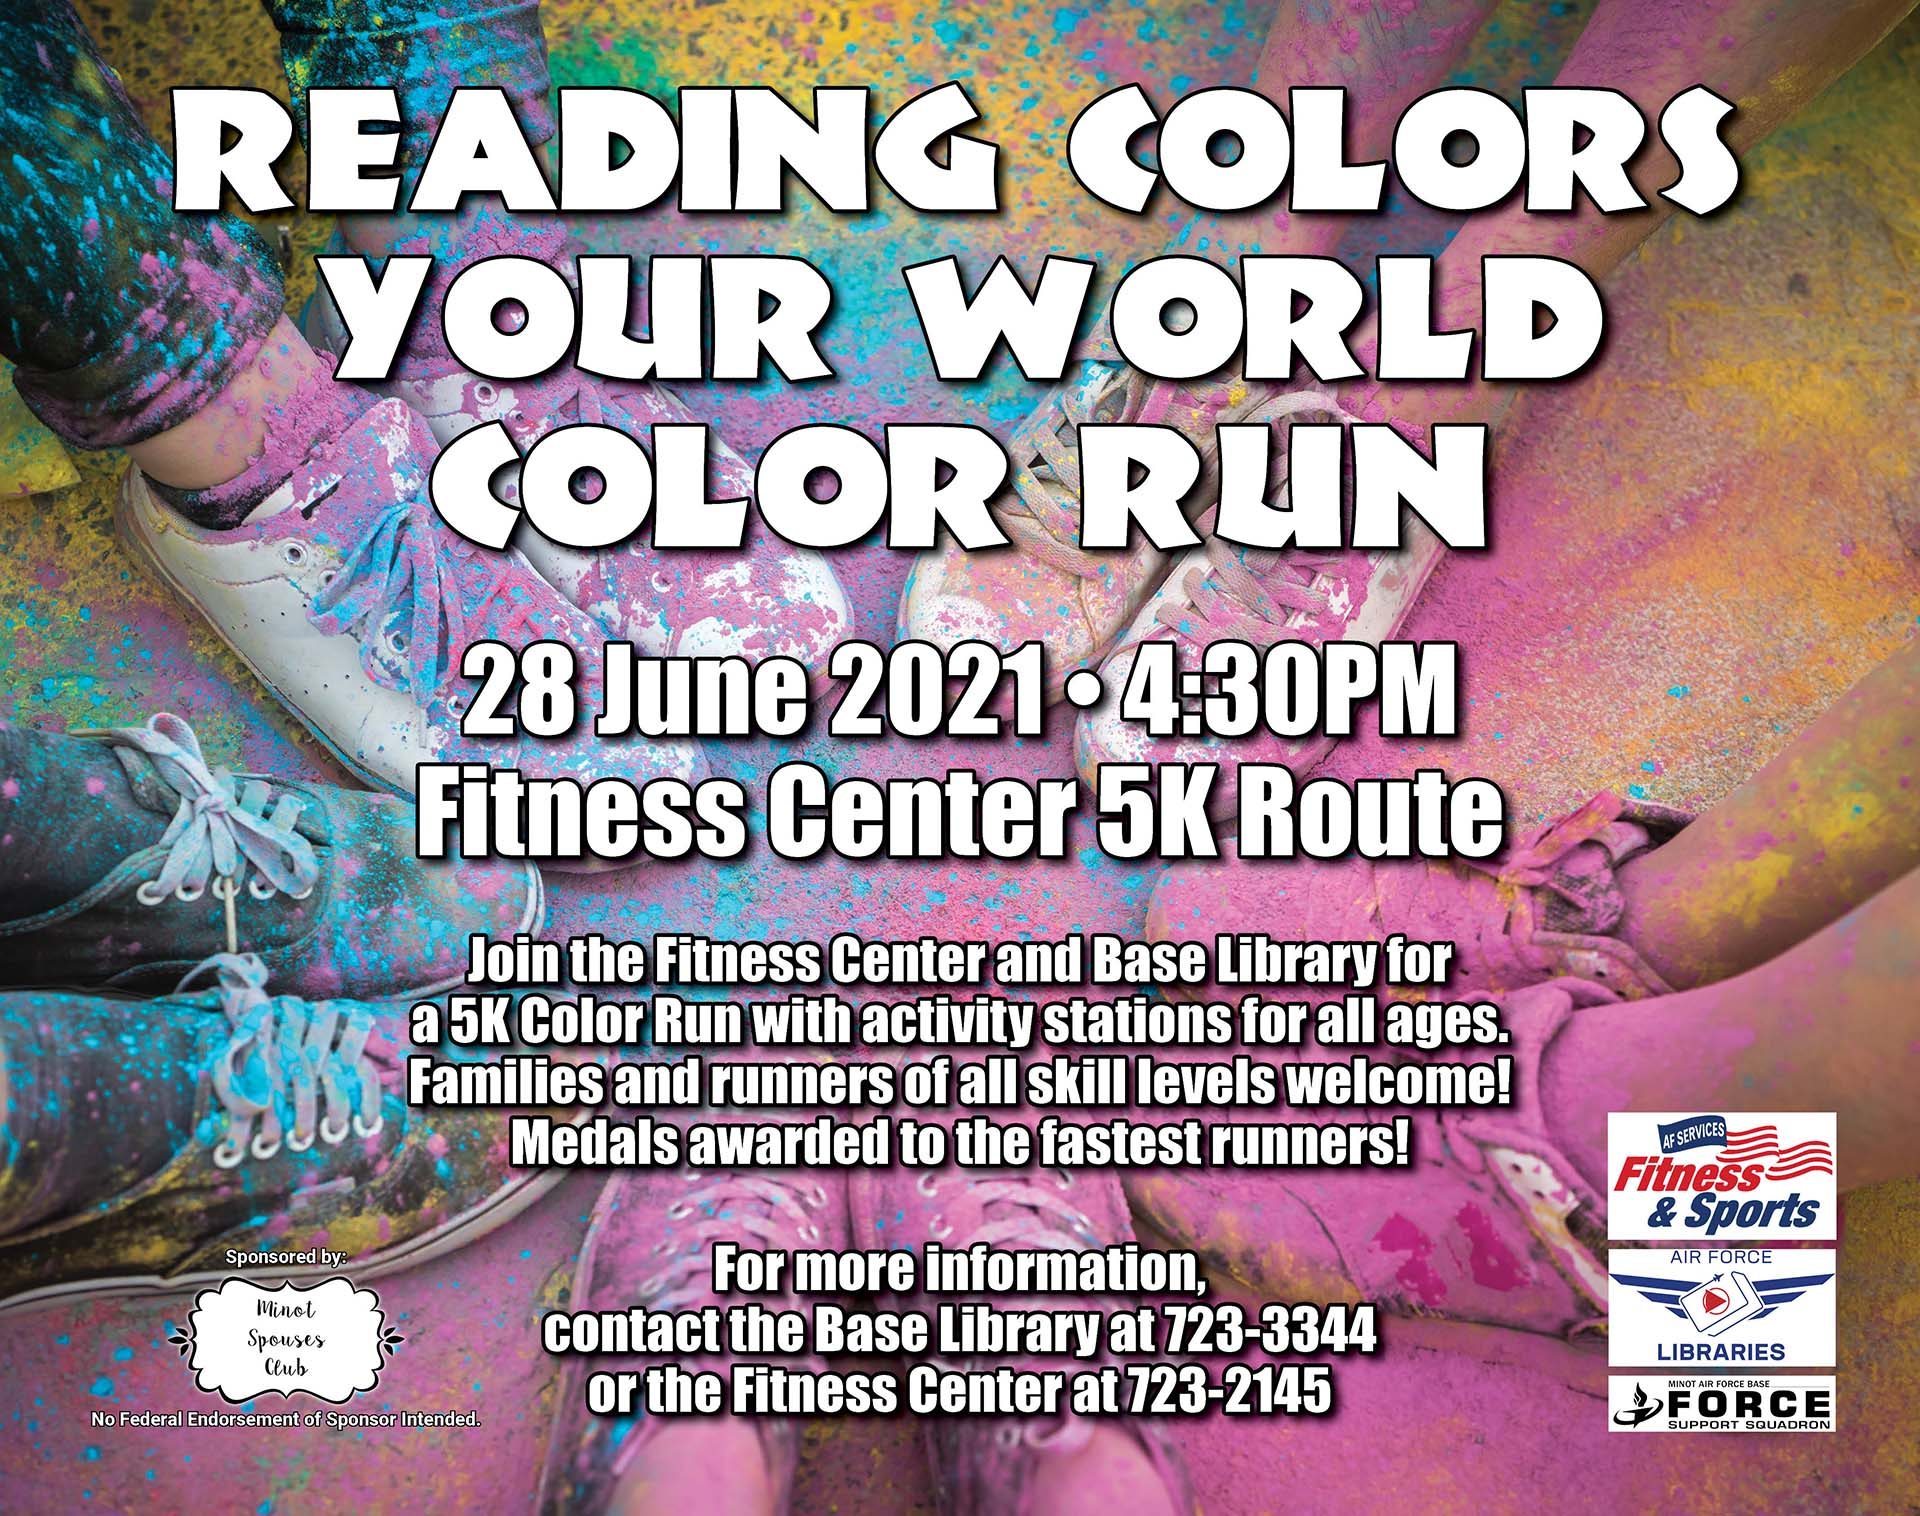 Reading Colors Your World Color Run